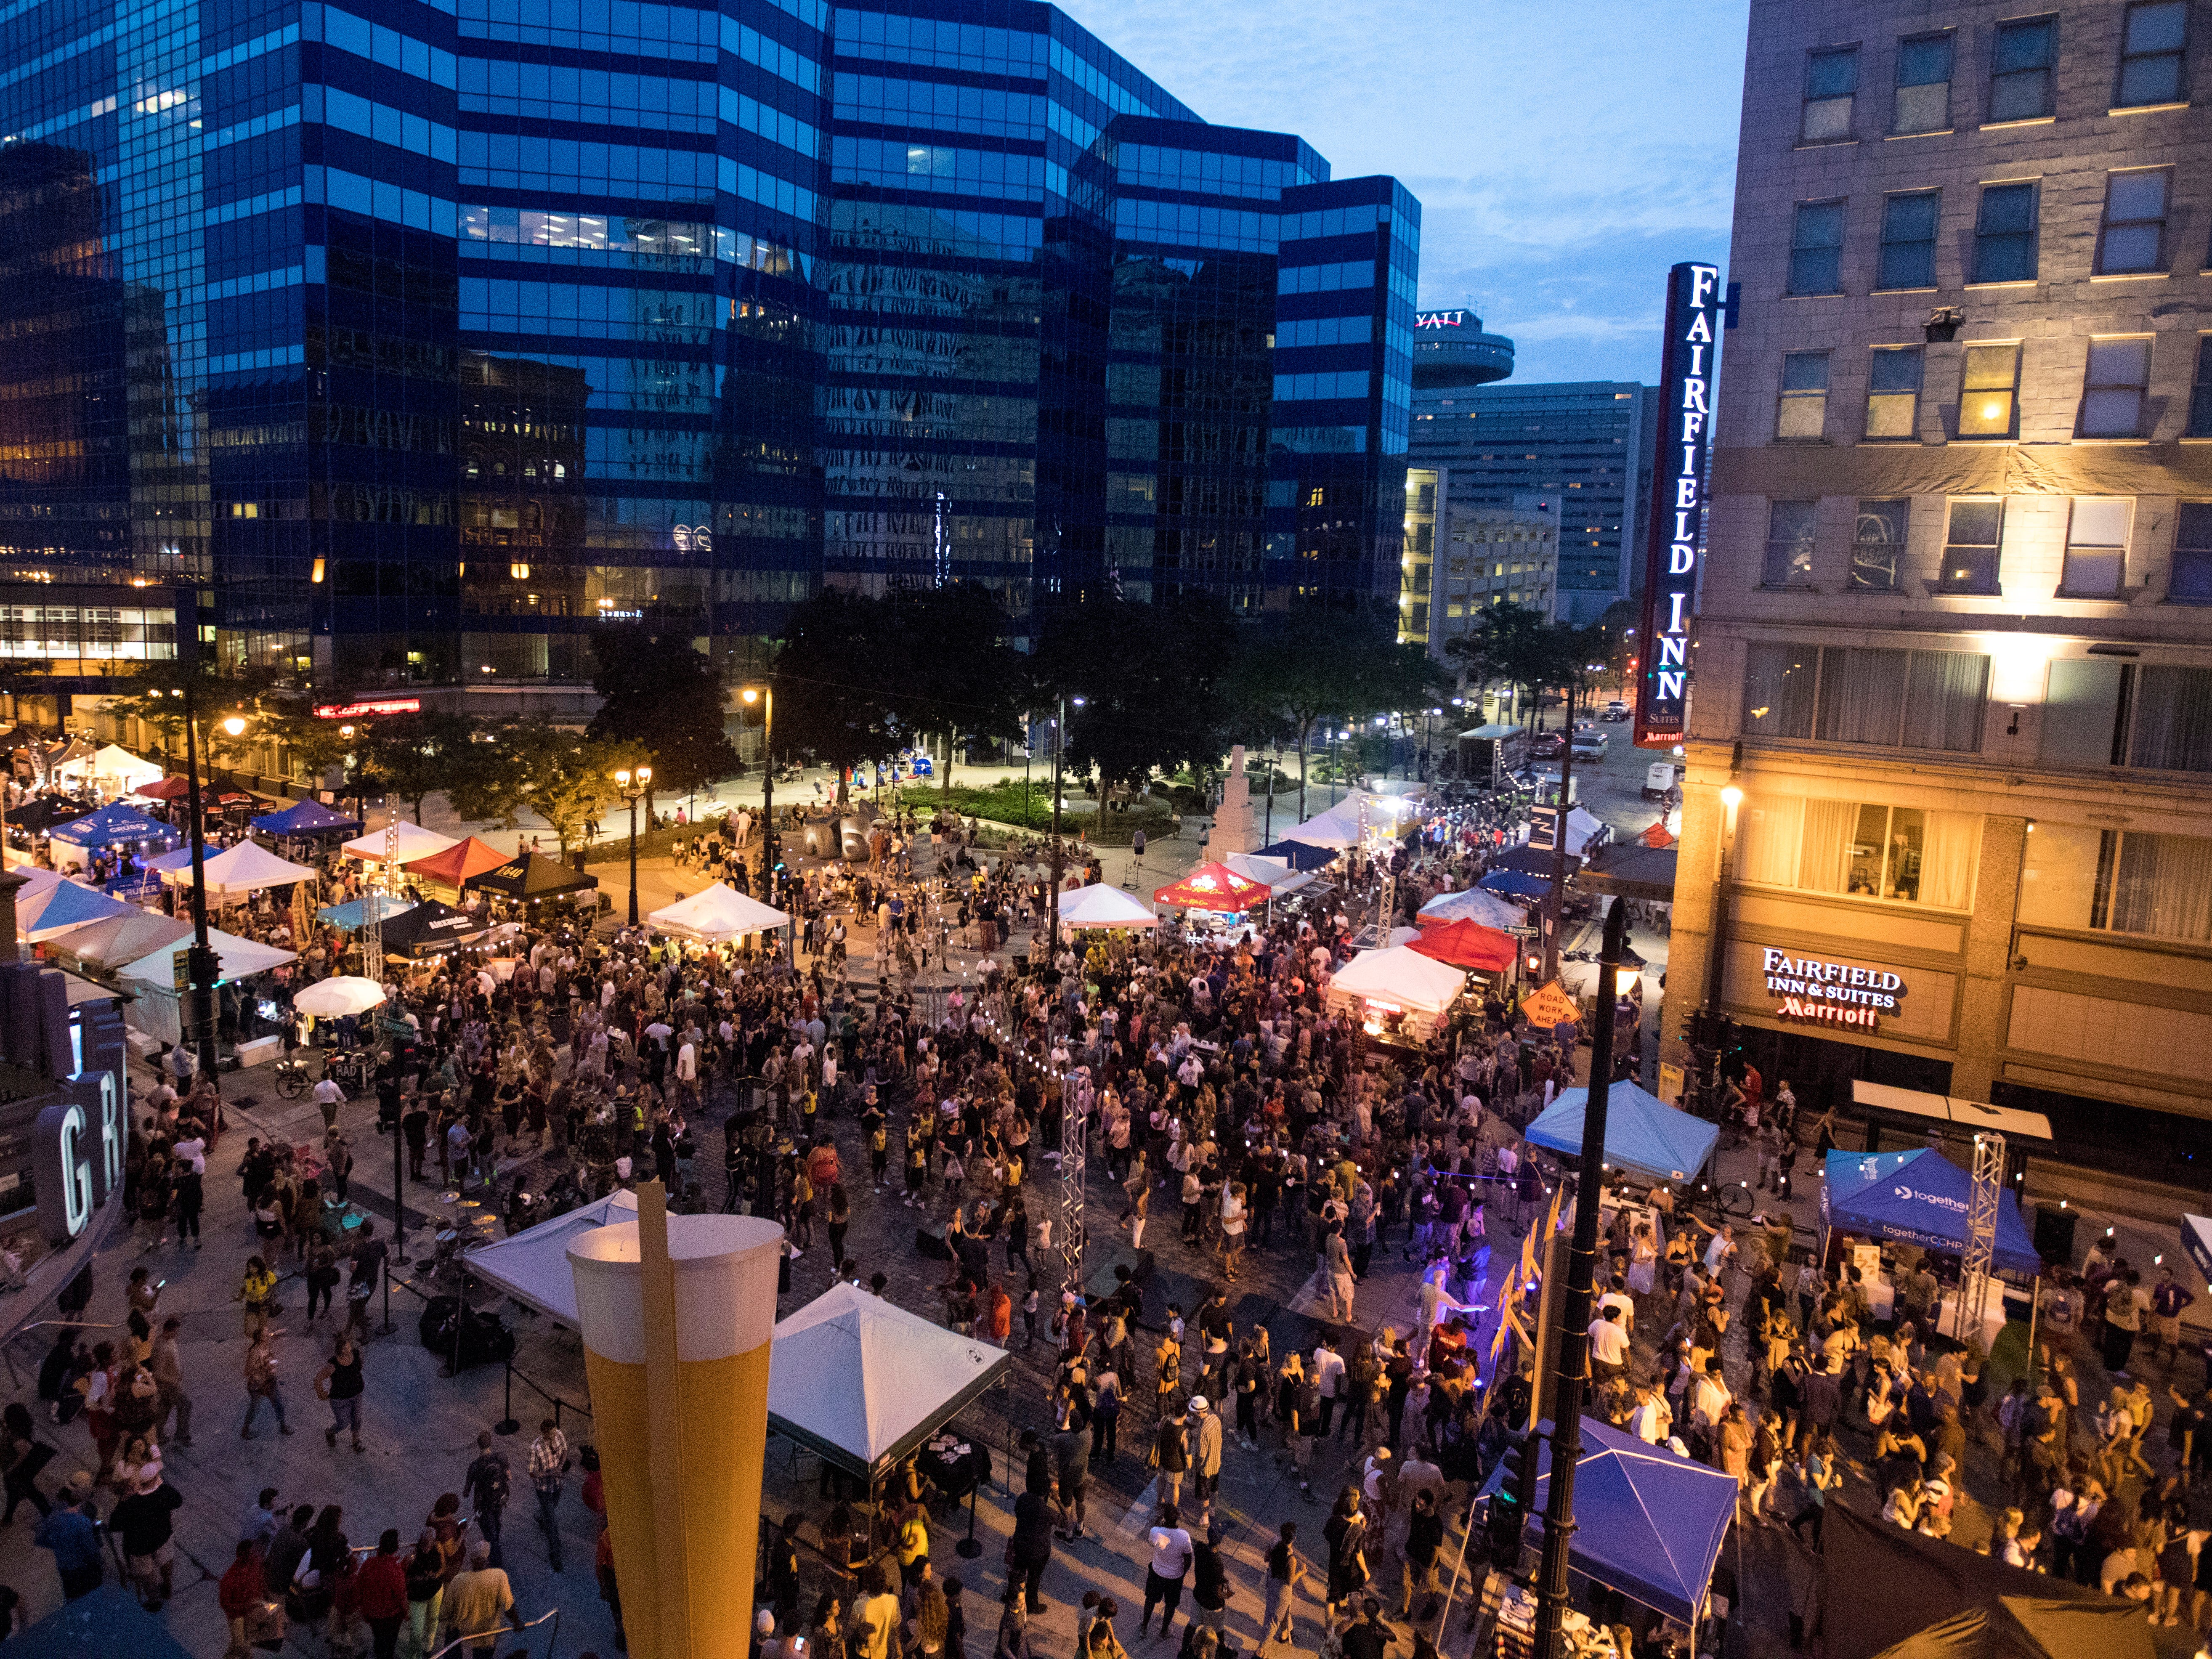 ---Night Market includes a VIP section that is on the third floor balcony at the Grand Avenue mall. The balcony over looks the main central area of the Night Market as people come to enjoy the music, food and vendors for the nights event. ---Photo by Tyger Williams / Milwaukee Journal Sentinel